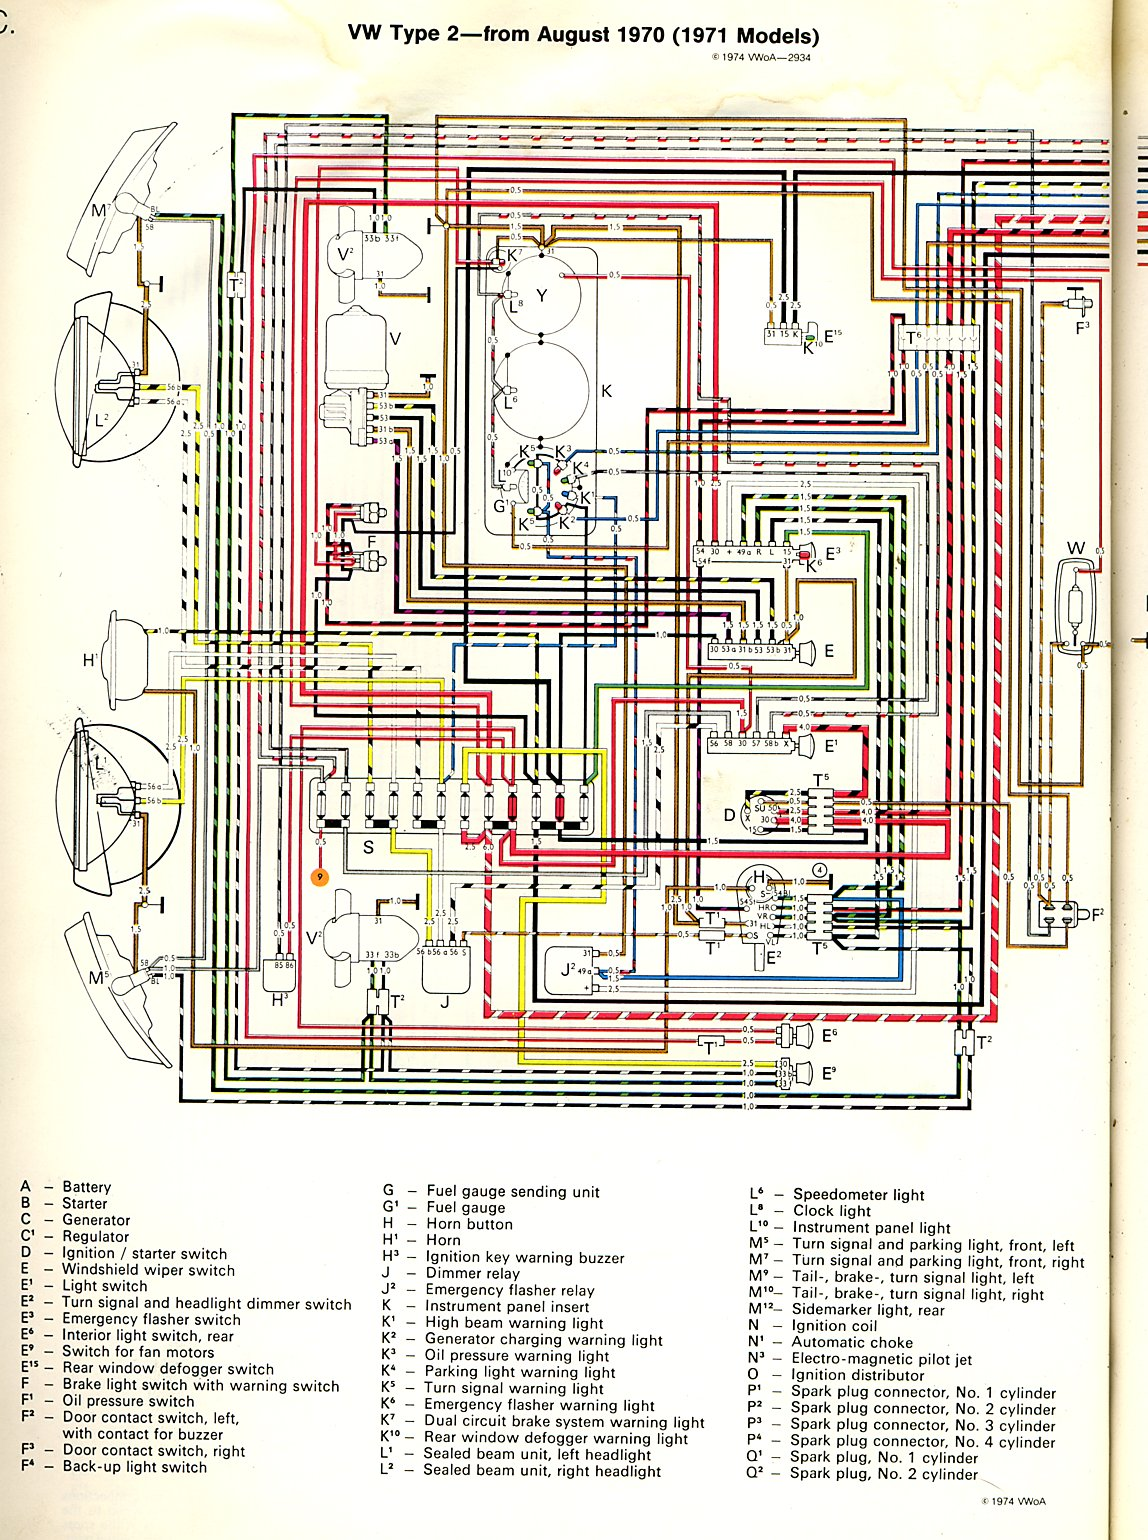 Type 2 Wiring Diagrams 1958 Corvette Diagram